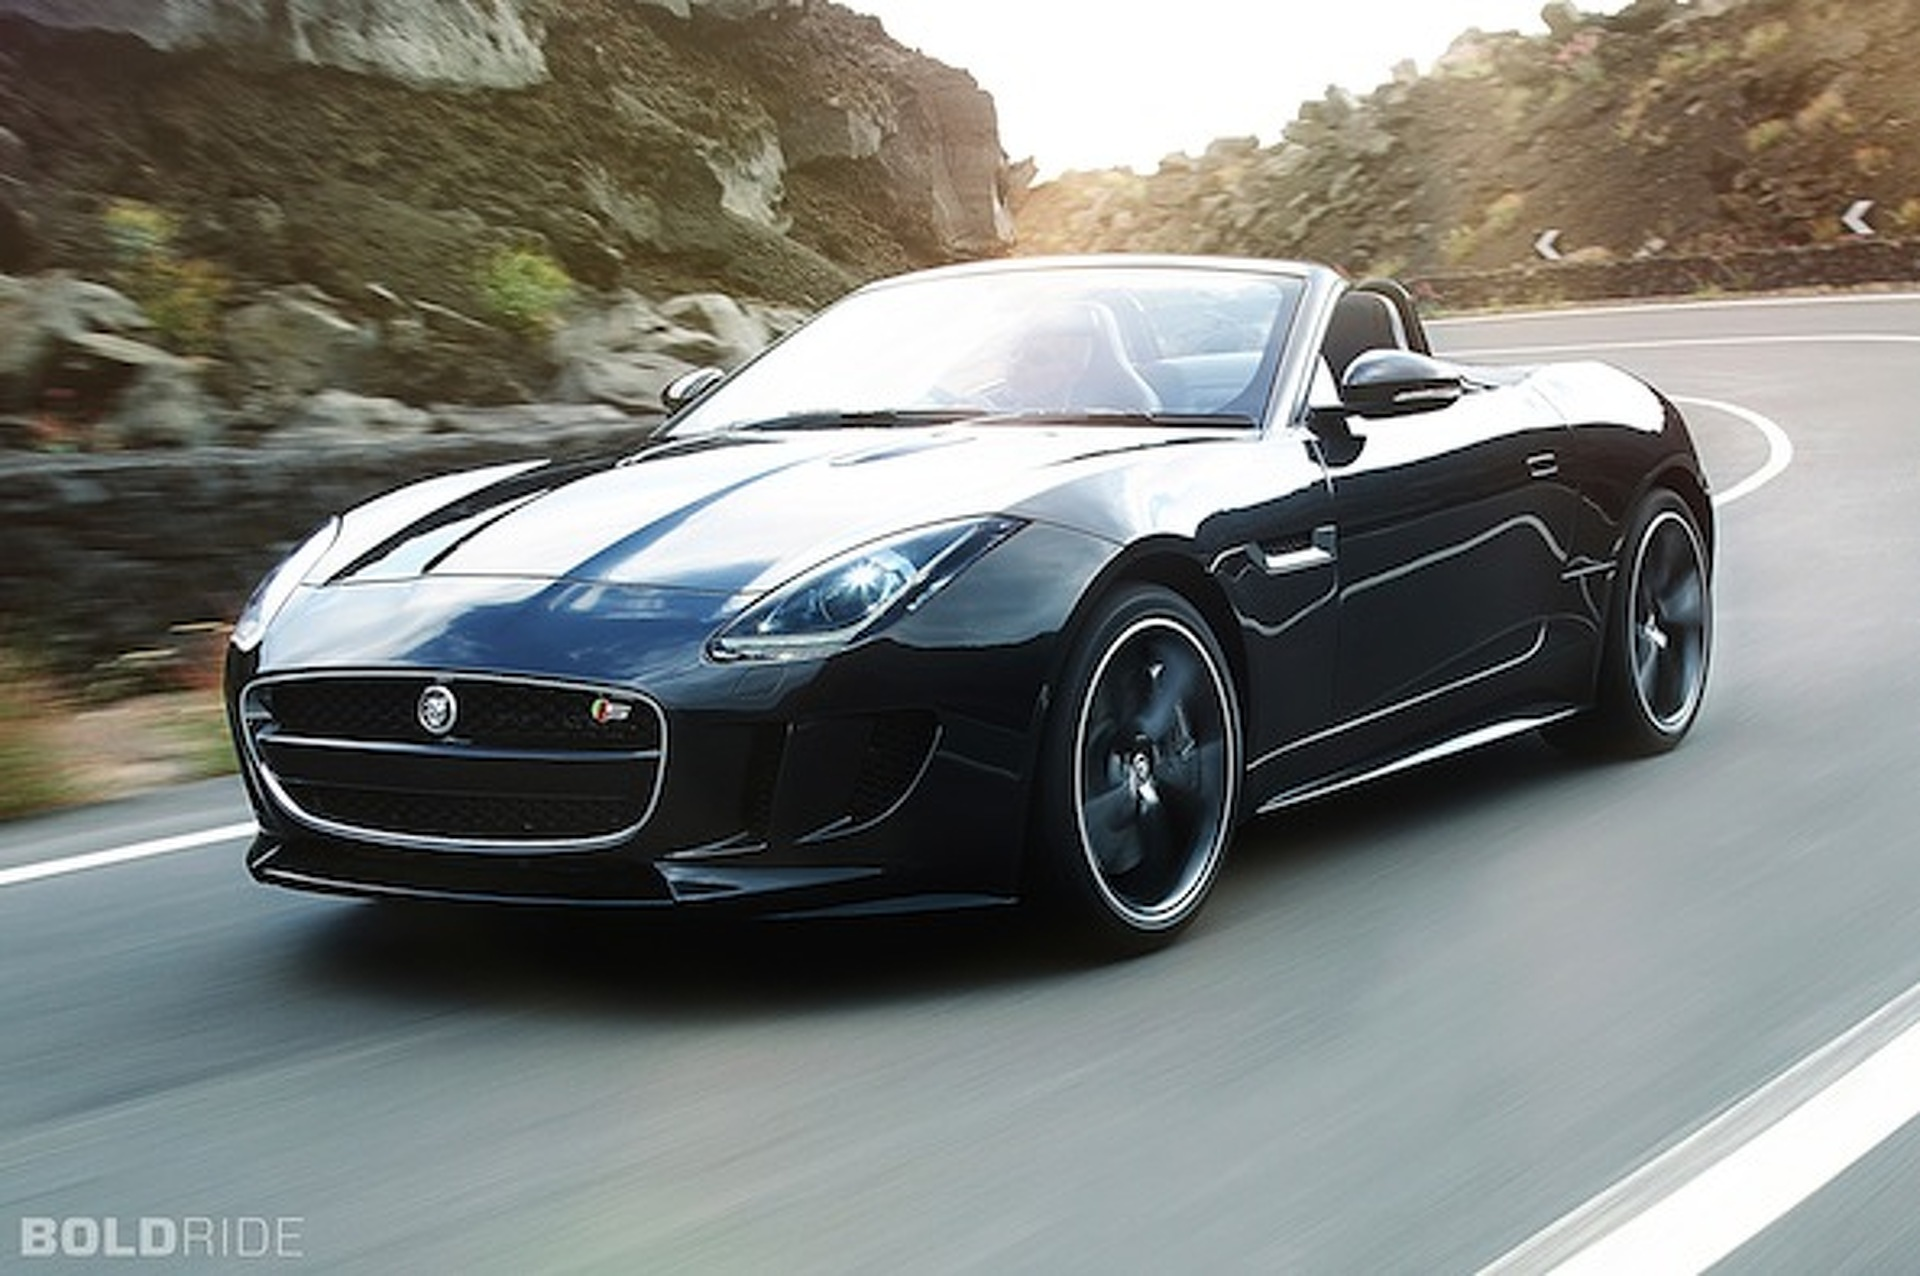 12 Cars of Christmas: Jaguar F-Type